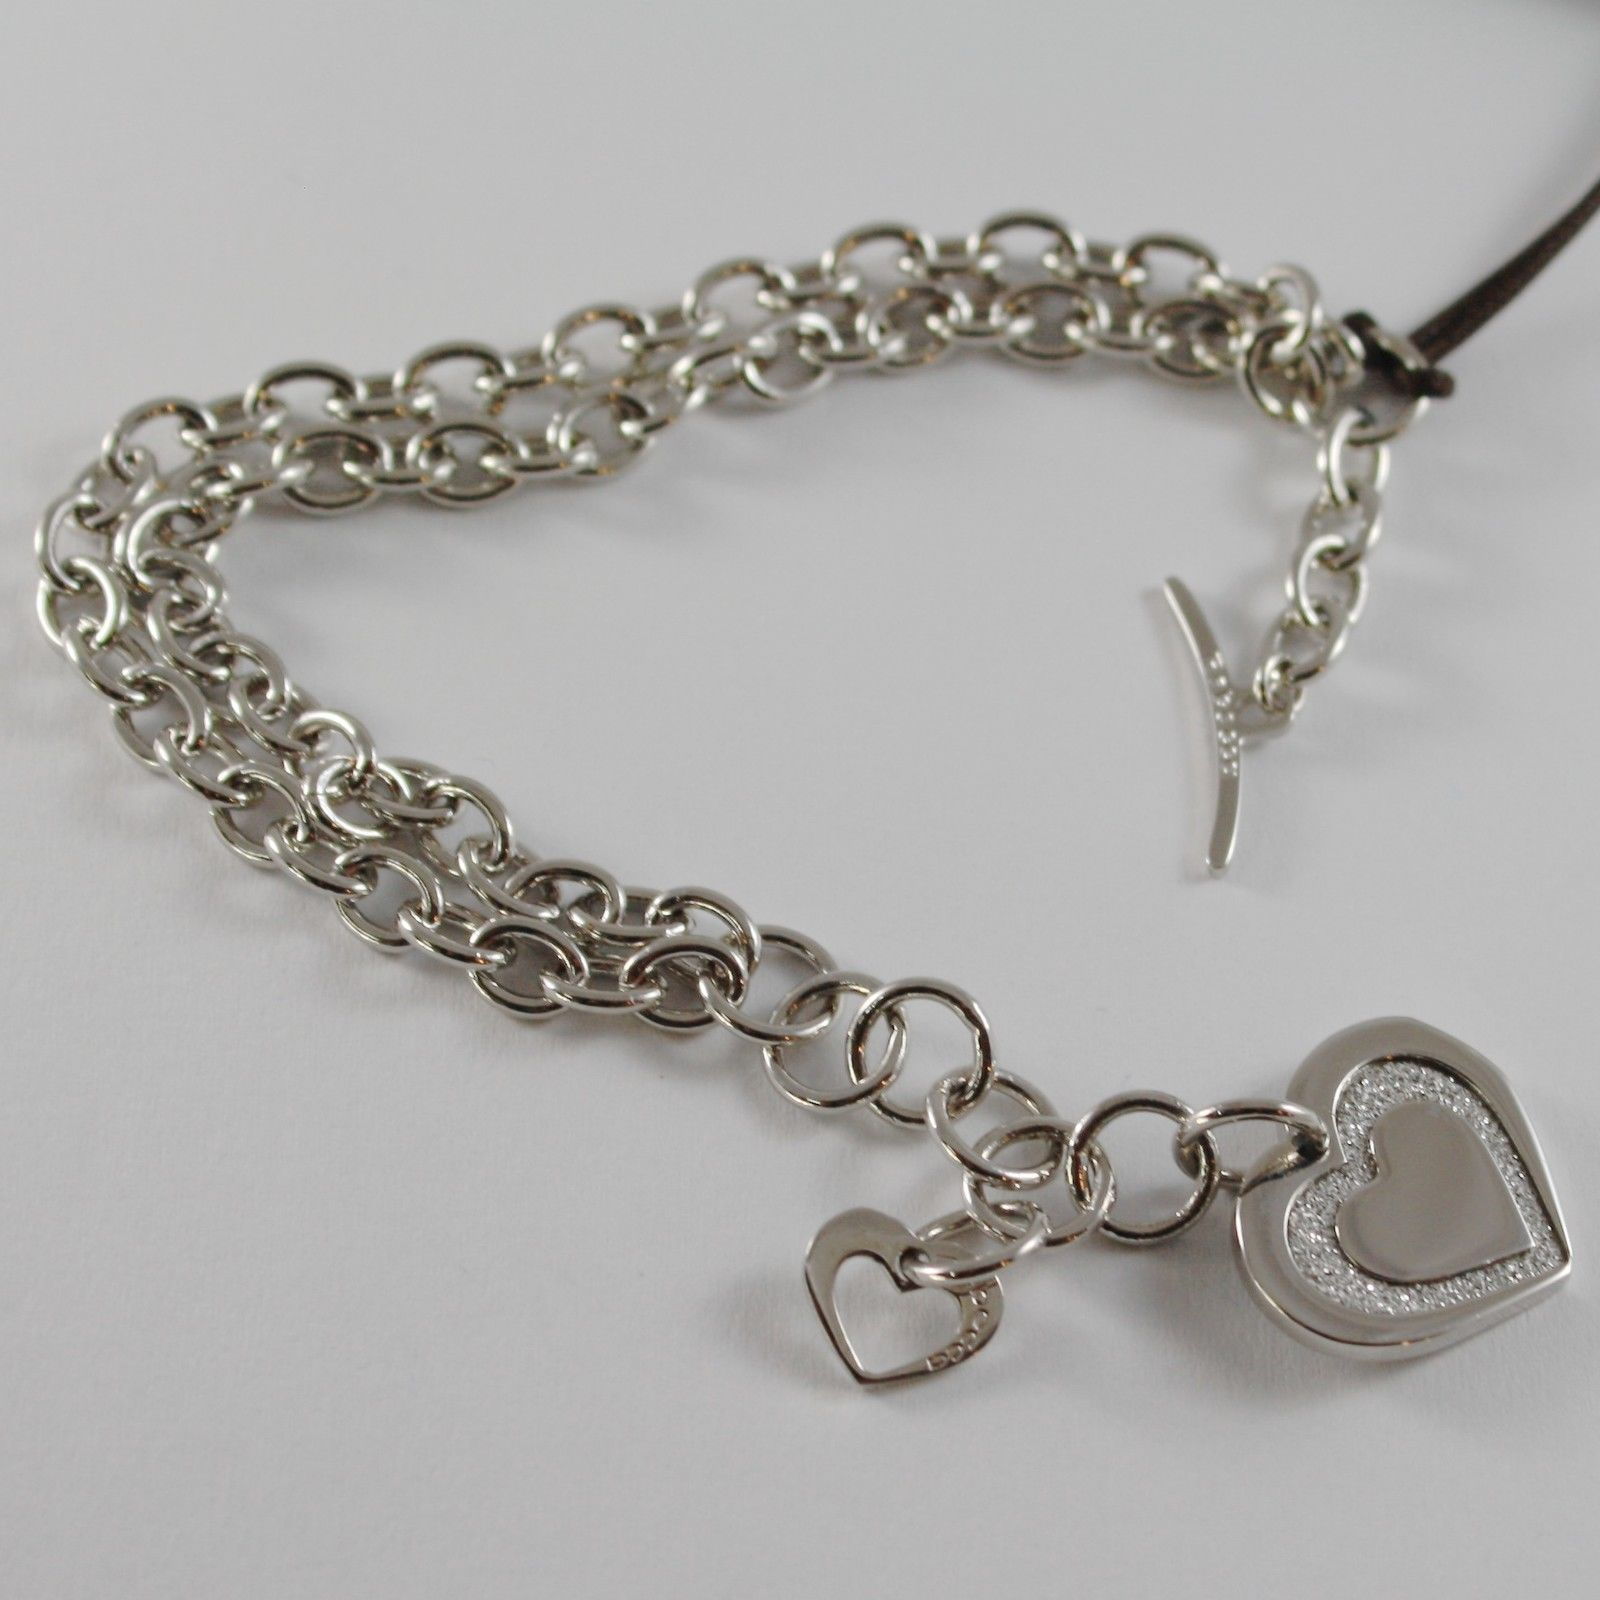 PLATED WHITE GOLD BRONZE REBECCA BRACELET WITH HEART PENDANT GLAM MADE IN ITALY